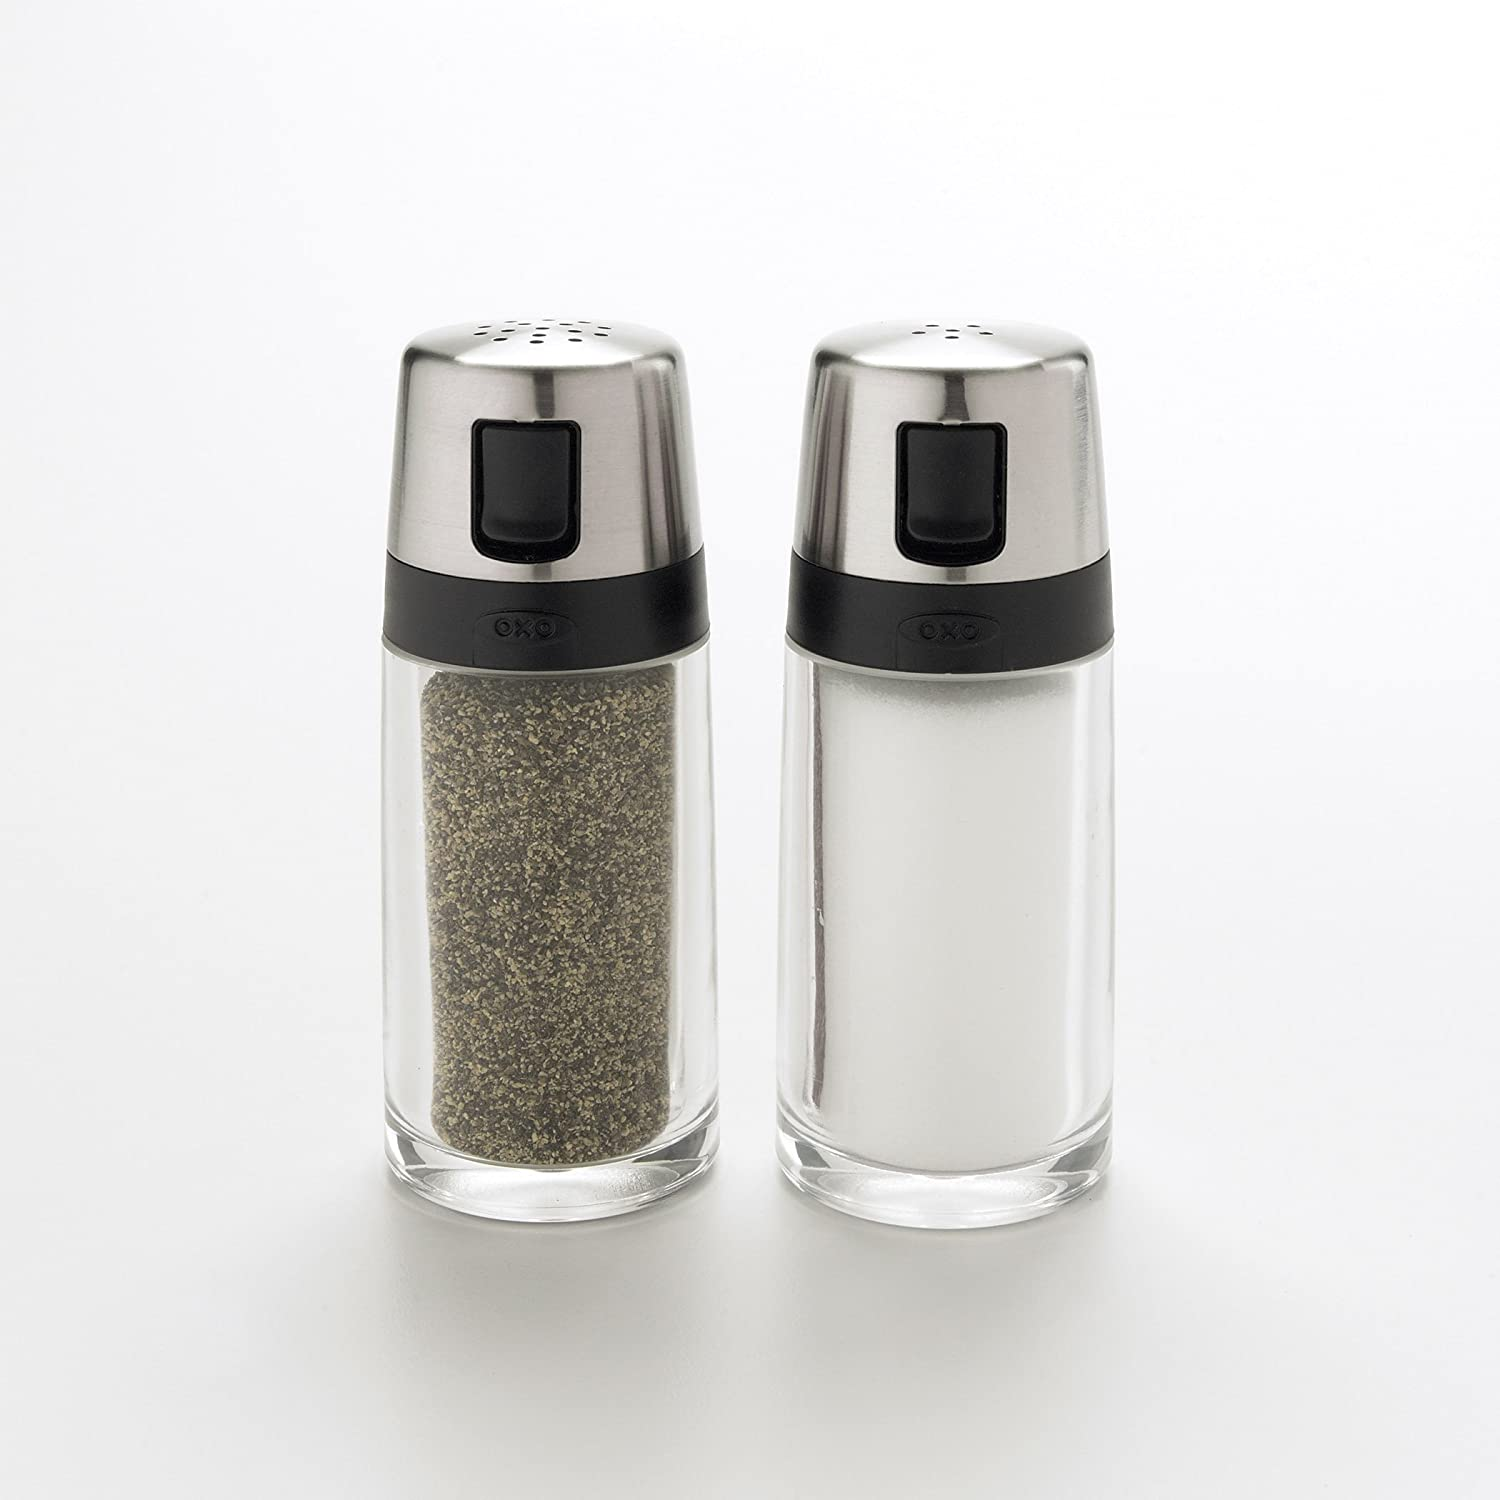 Amazon.com: OXO Good Grips Salt And Pepper Shaker Set With Pour Spouts:  Kitchen U0026 Dining